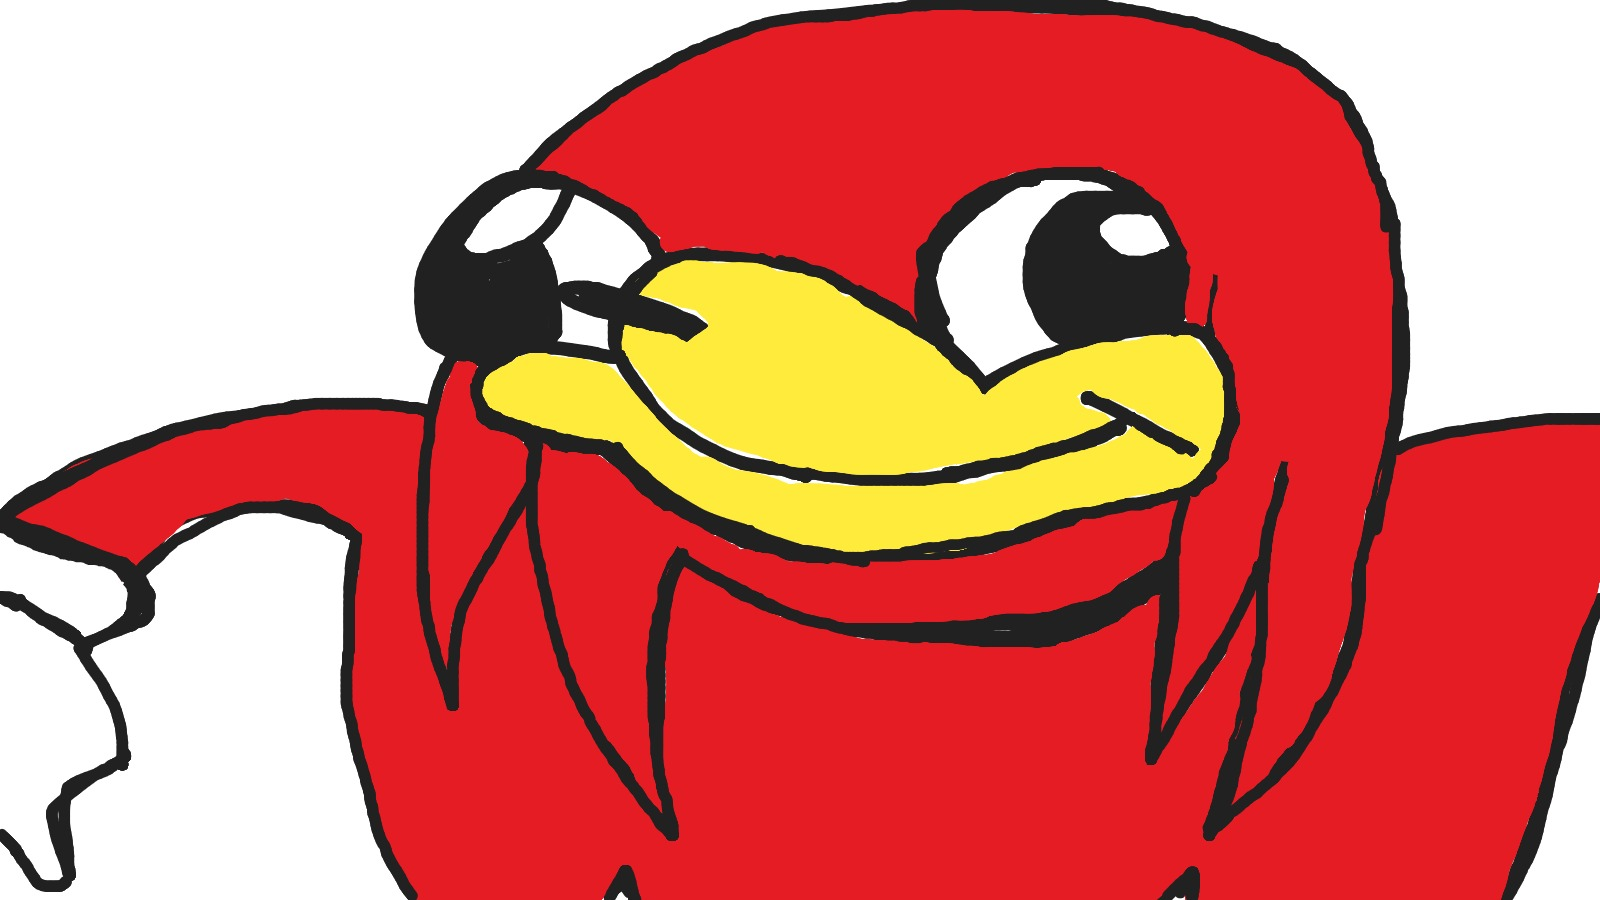 Uganda knuckles clipart jpg free download My 9 years old brother just draw Knuckles   Ugandan Knuckles ... jpg free download